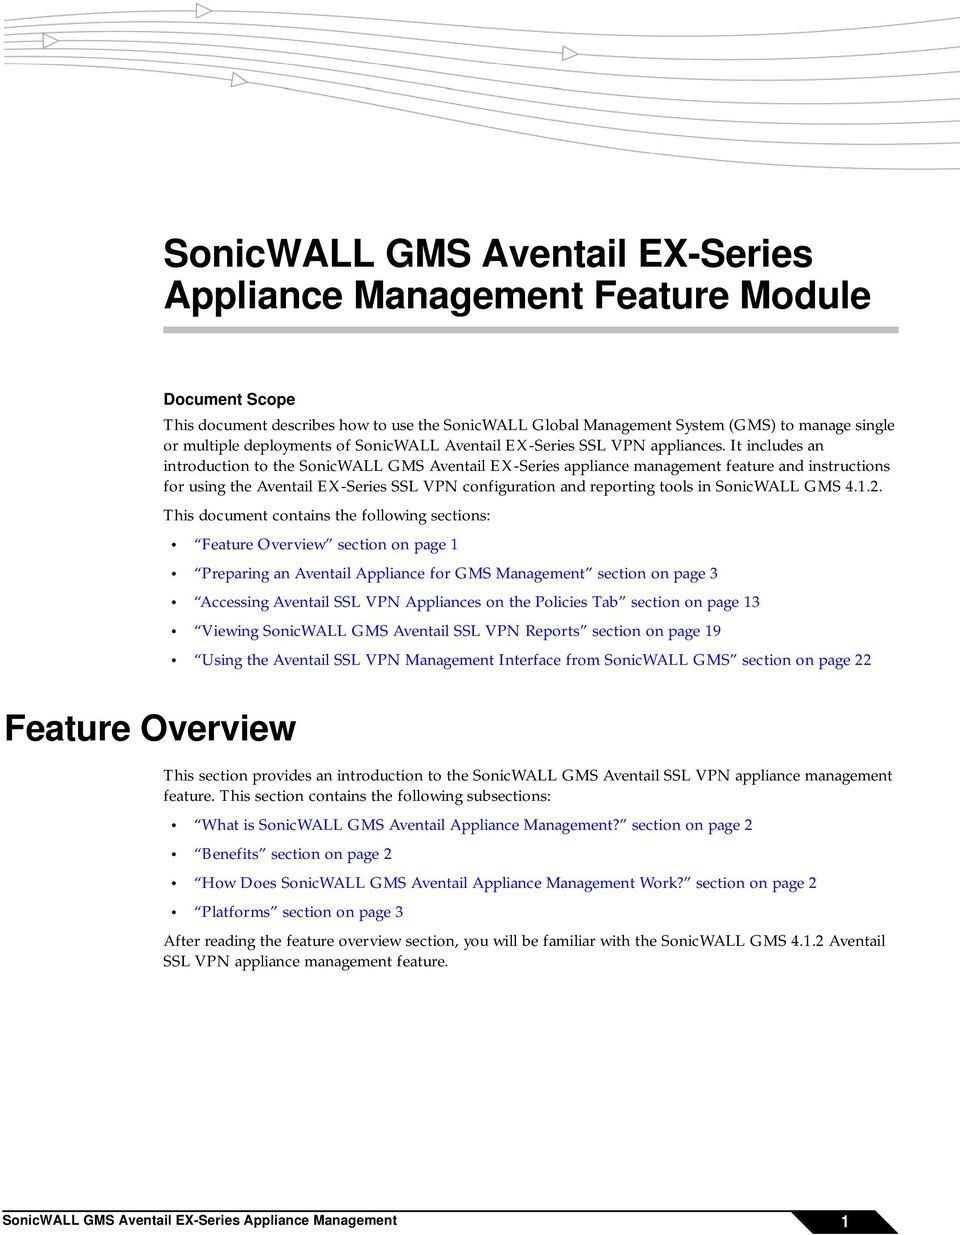 It includes an introduction to the SonicWALL GMS Aventail EX-Series appliance management feature and instructions for using the Aventail EX-Series SSL VPN configuration and reporting tools in